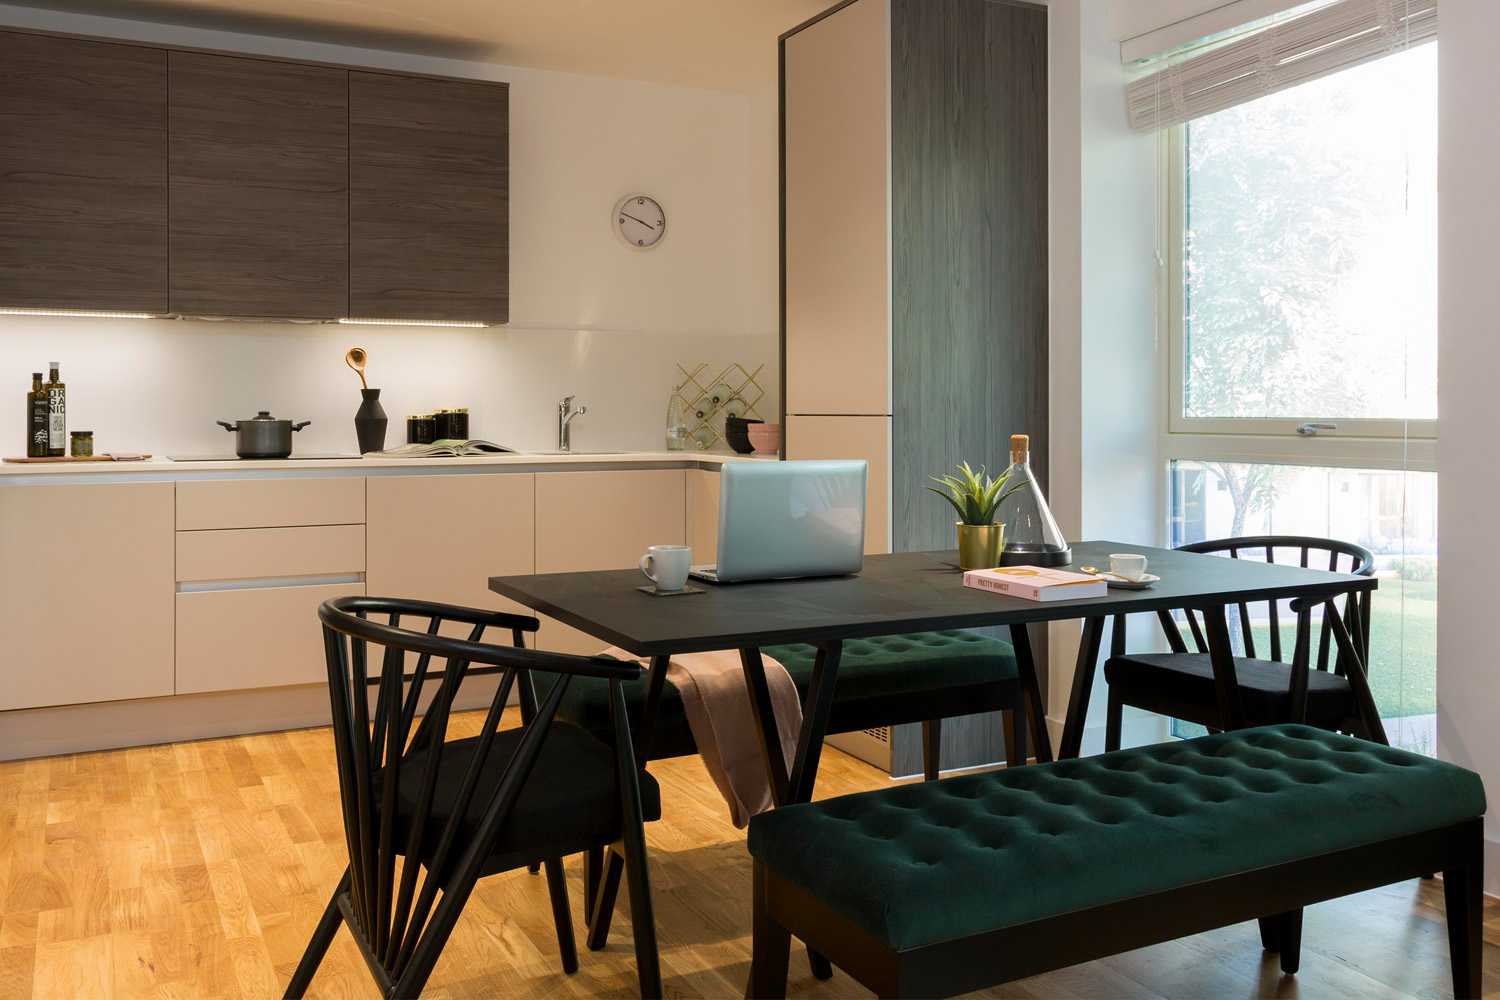 SOUTHERN HOUSING_DALMENY AVENUE dining 001.jpg